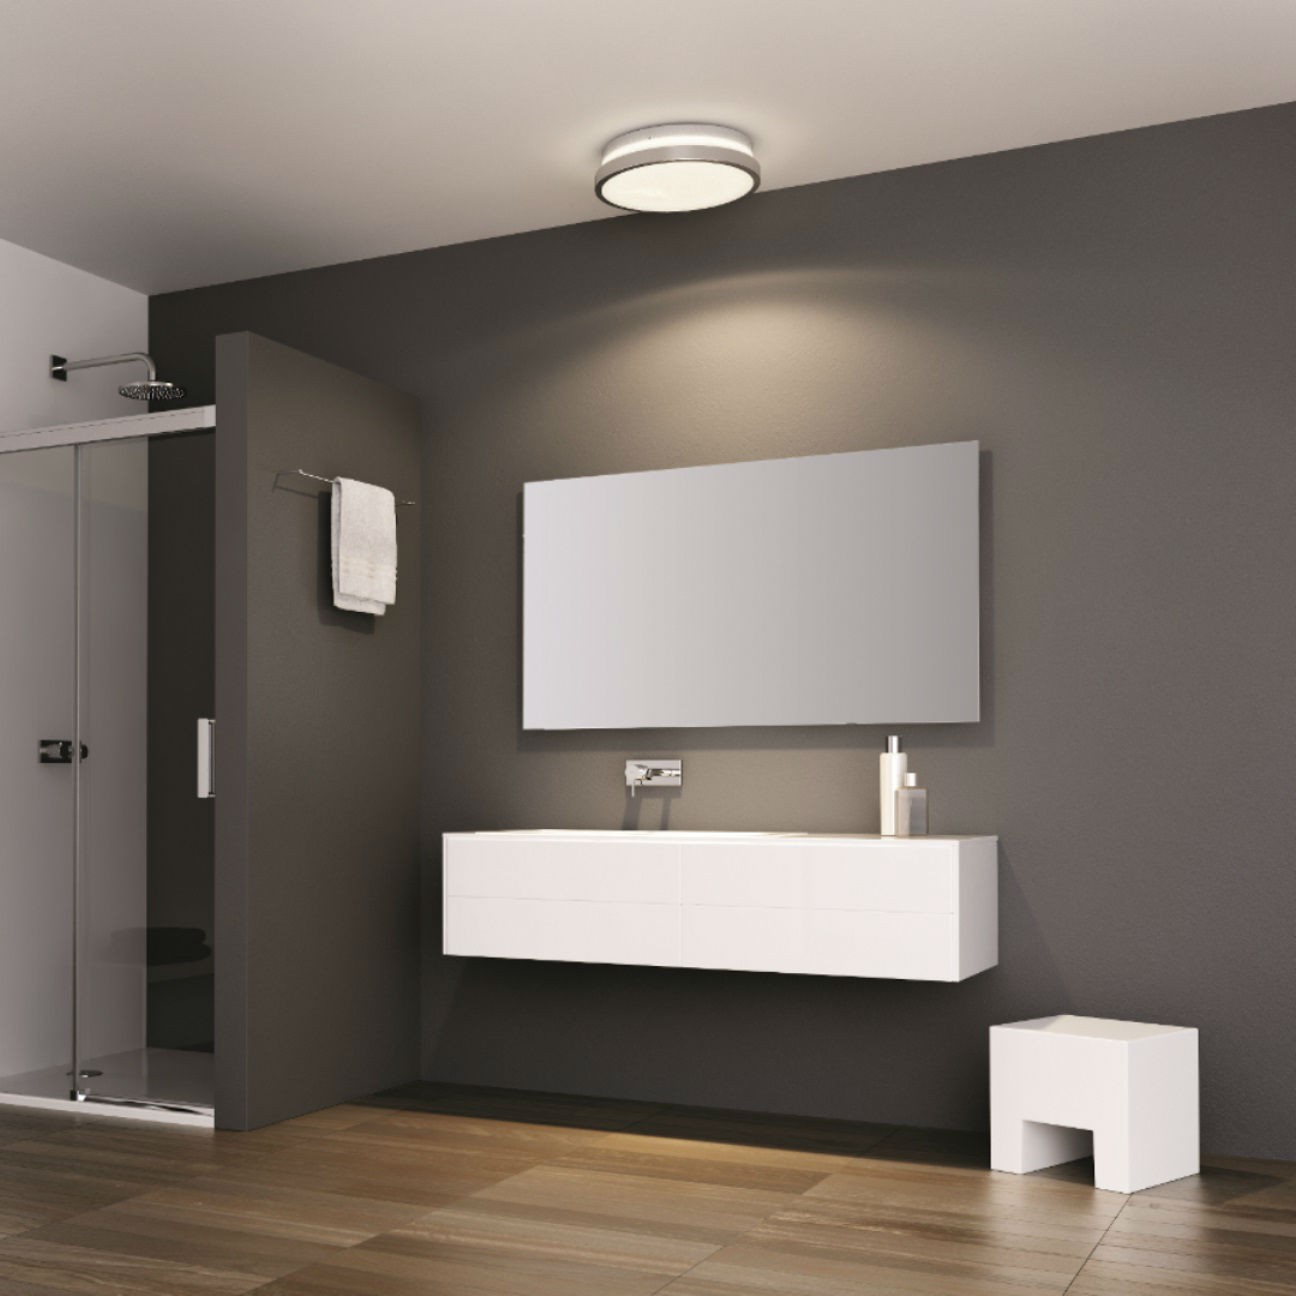 spot led salle de bain osram salle de bain id es de. Black Bedroom Furniture Sets. Home Design Ideas